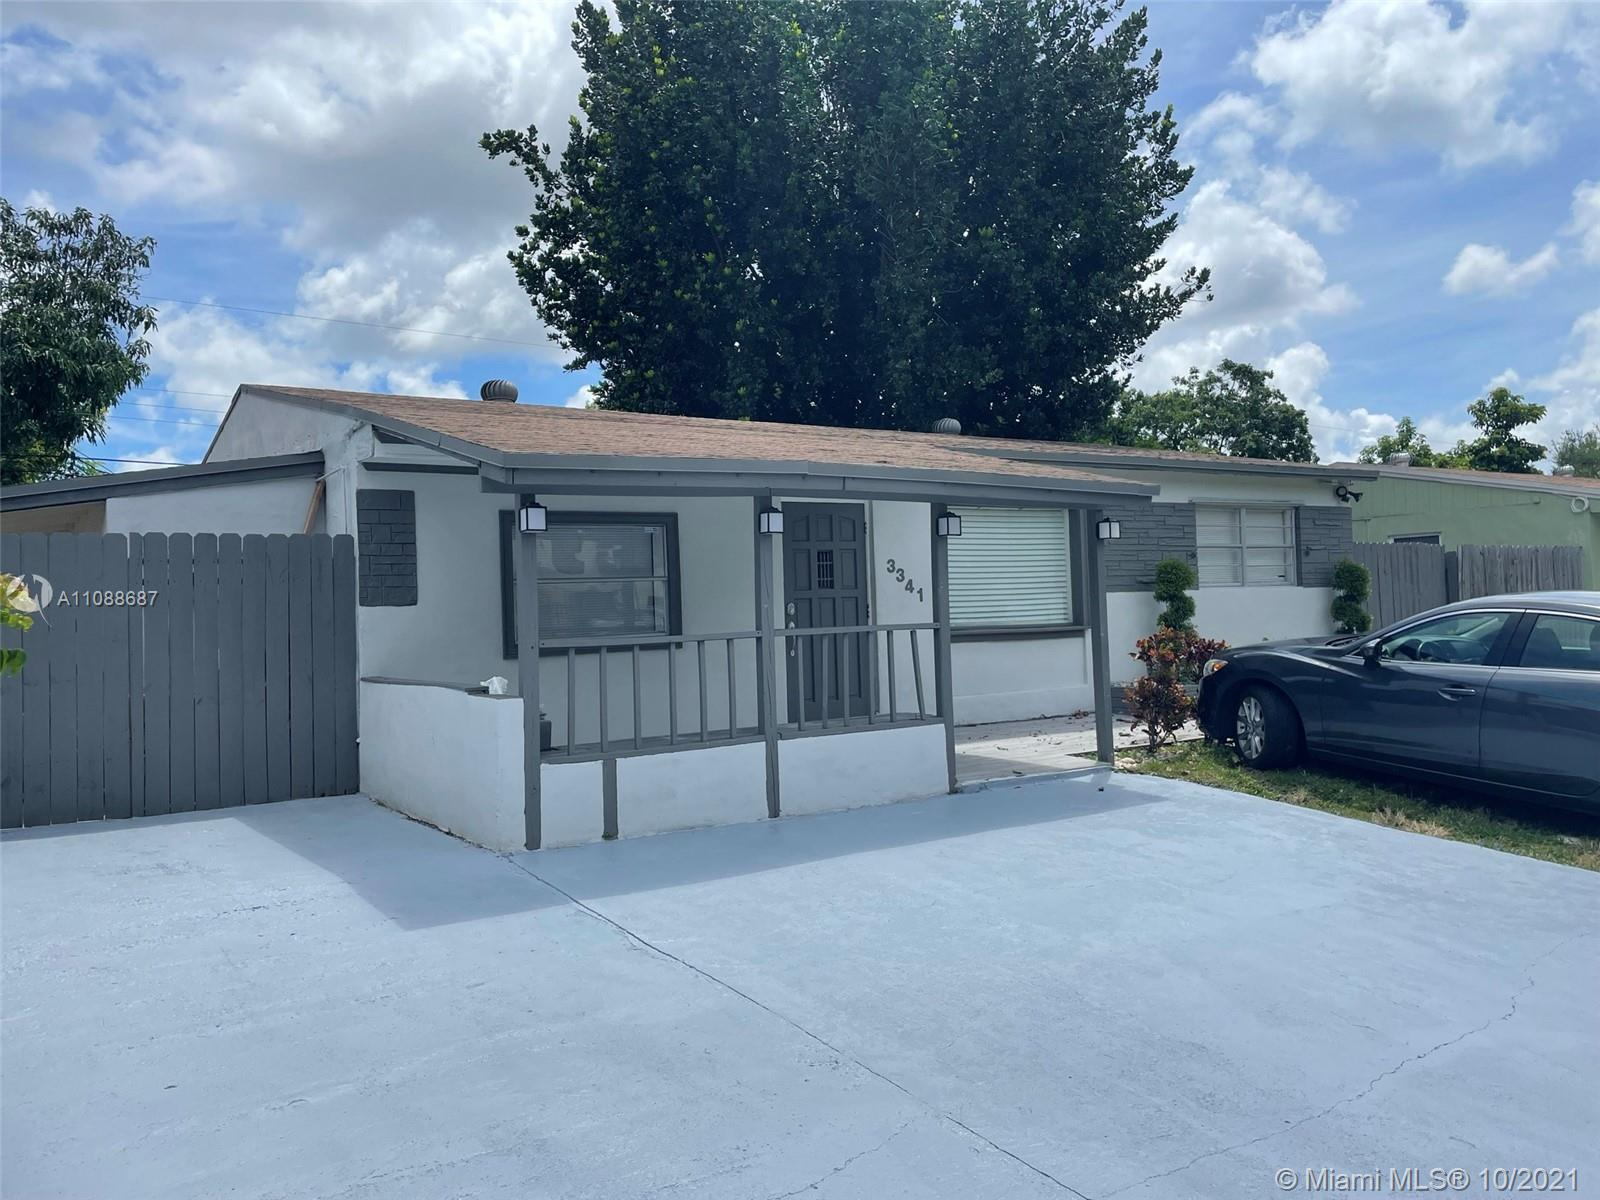 WOW!!!! SELLER IS MOTIVATED. THIS IS A 3 BEDROOMS, 2 BATH AND A LOT LARGER THAN THE TAX ROLLS SHOW (